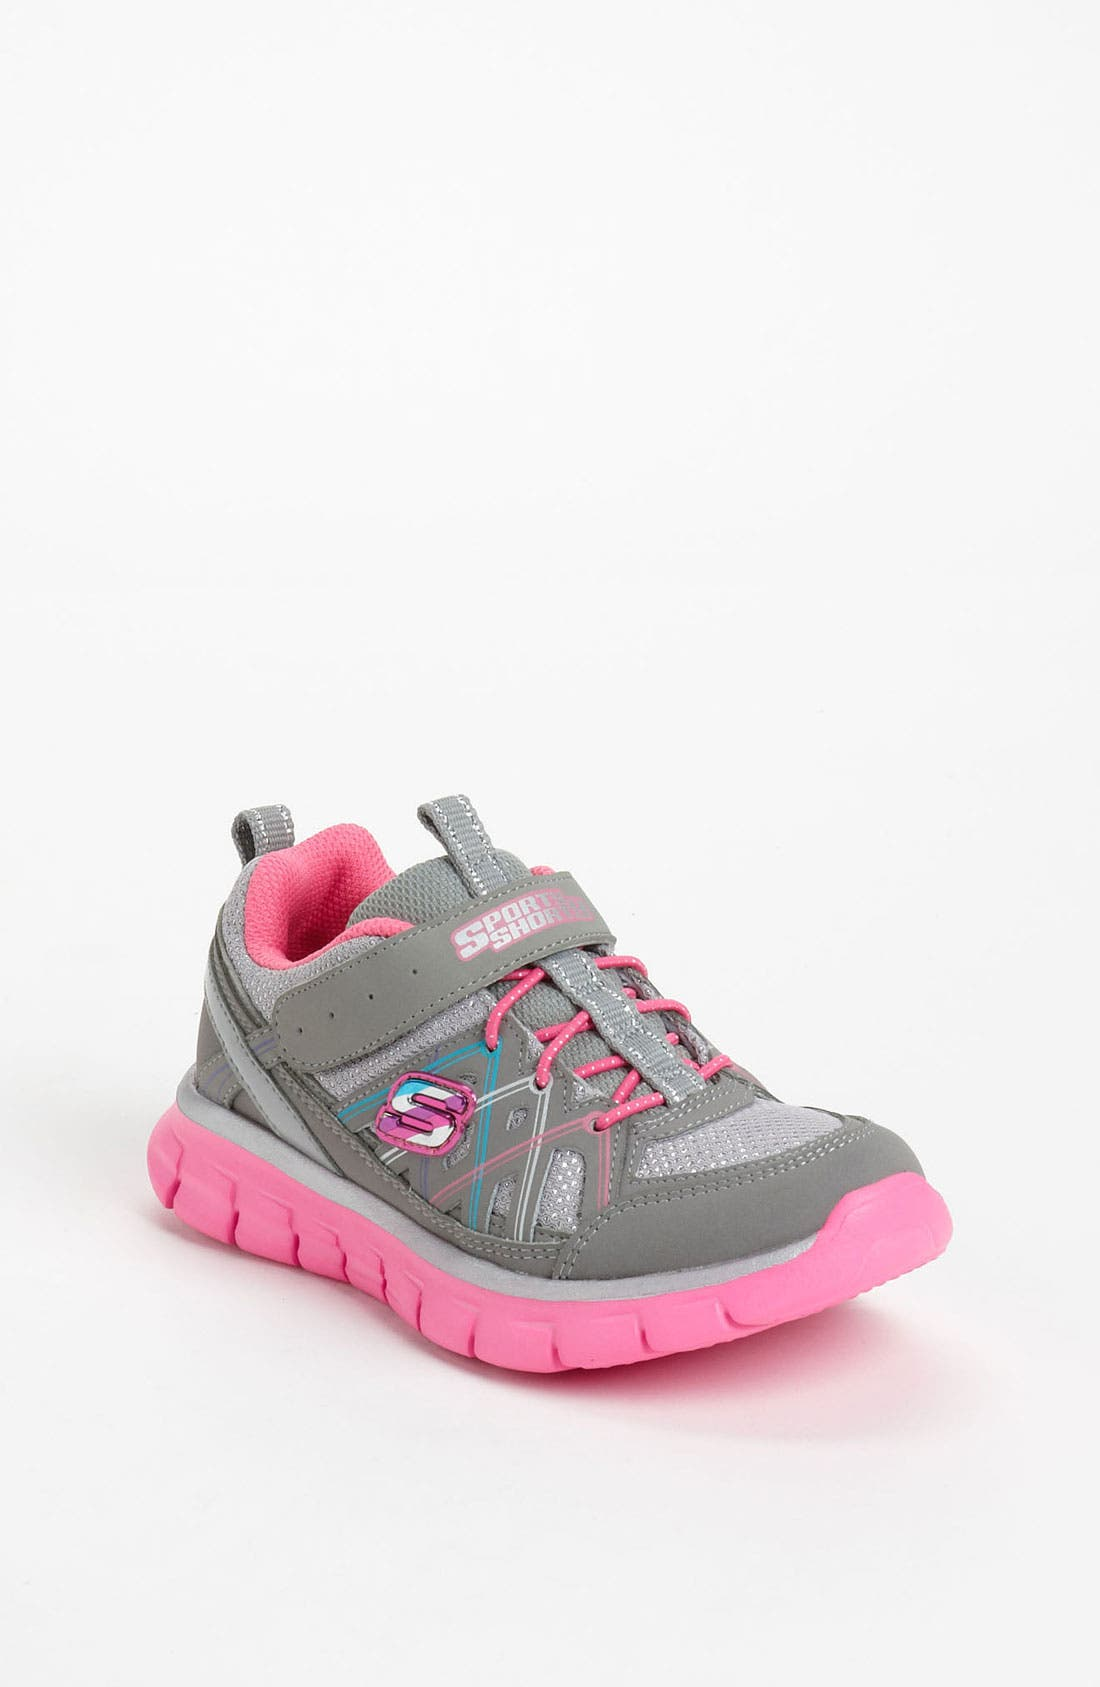 Alternate Image 1 Selected - SKECHERS 'Synergy Aerials' Sneaker (Toddler, Little Kid & Big Kid)